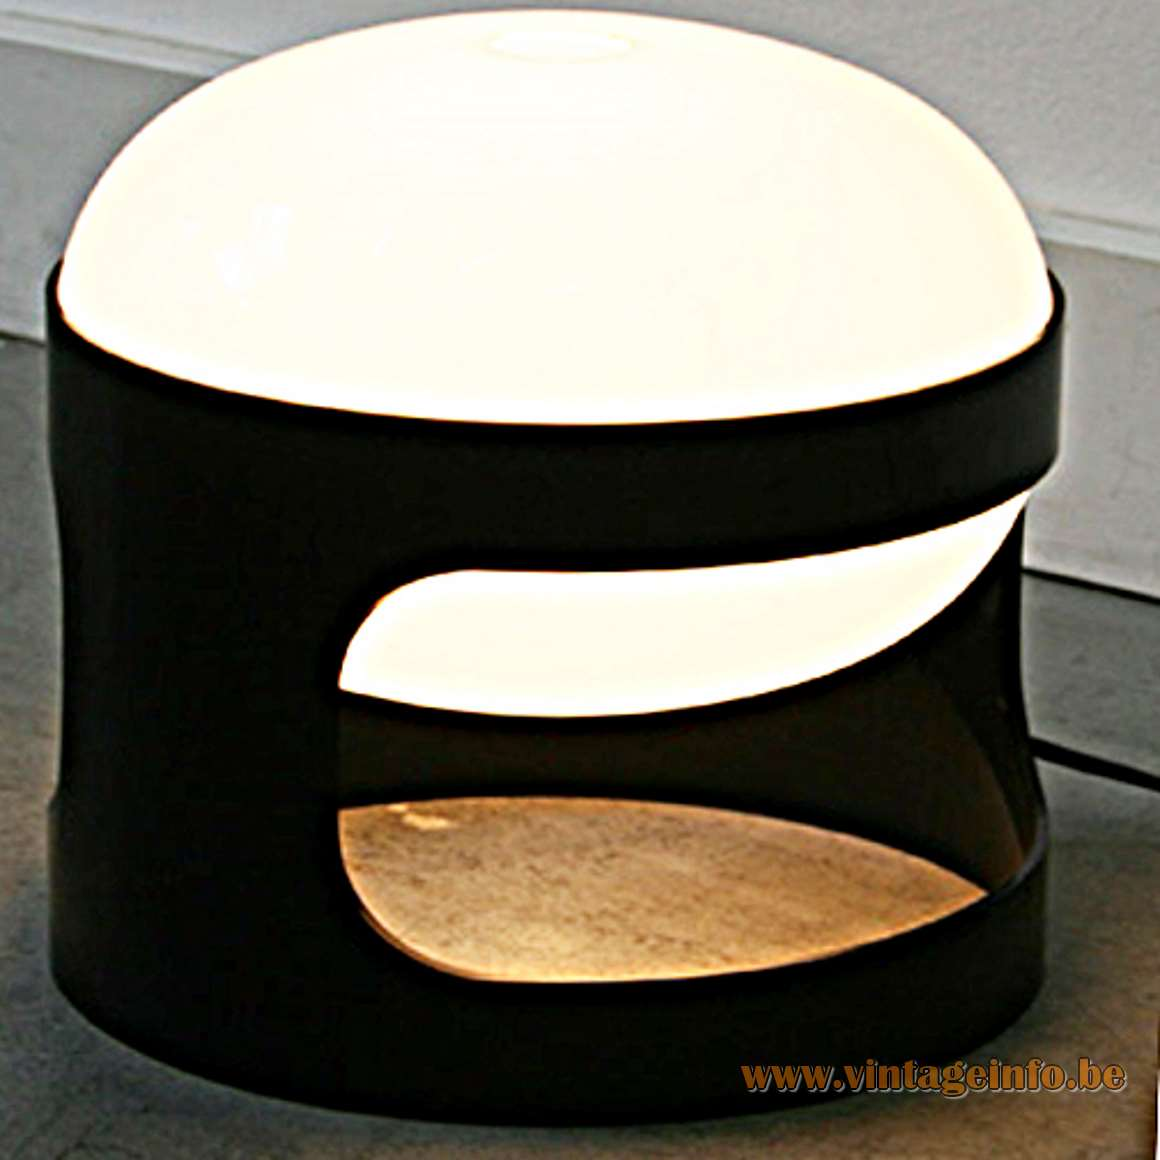 Joe Colombo KD27 Kartell Table Lamp - Black And White Version